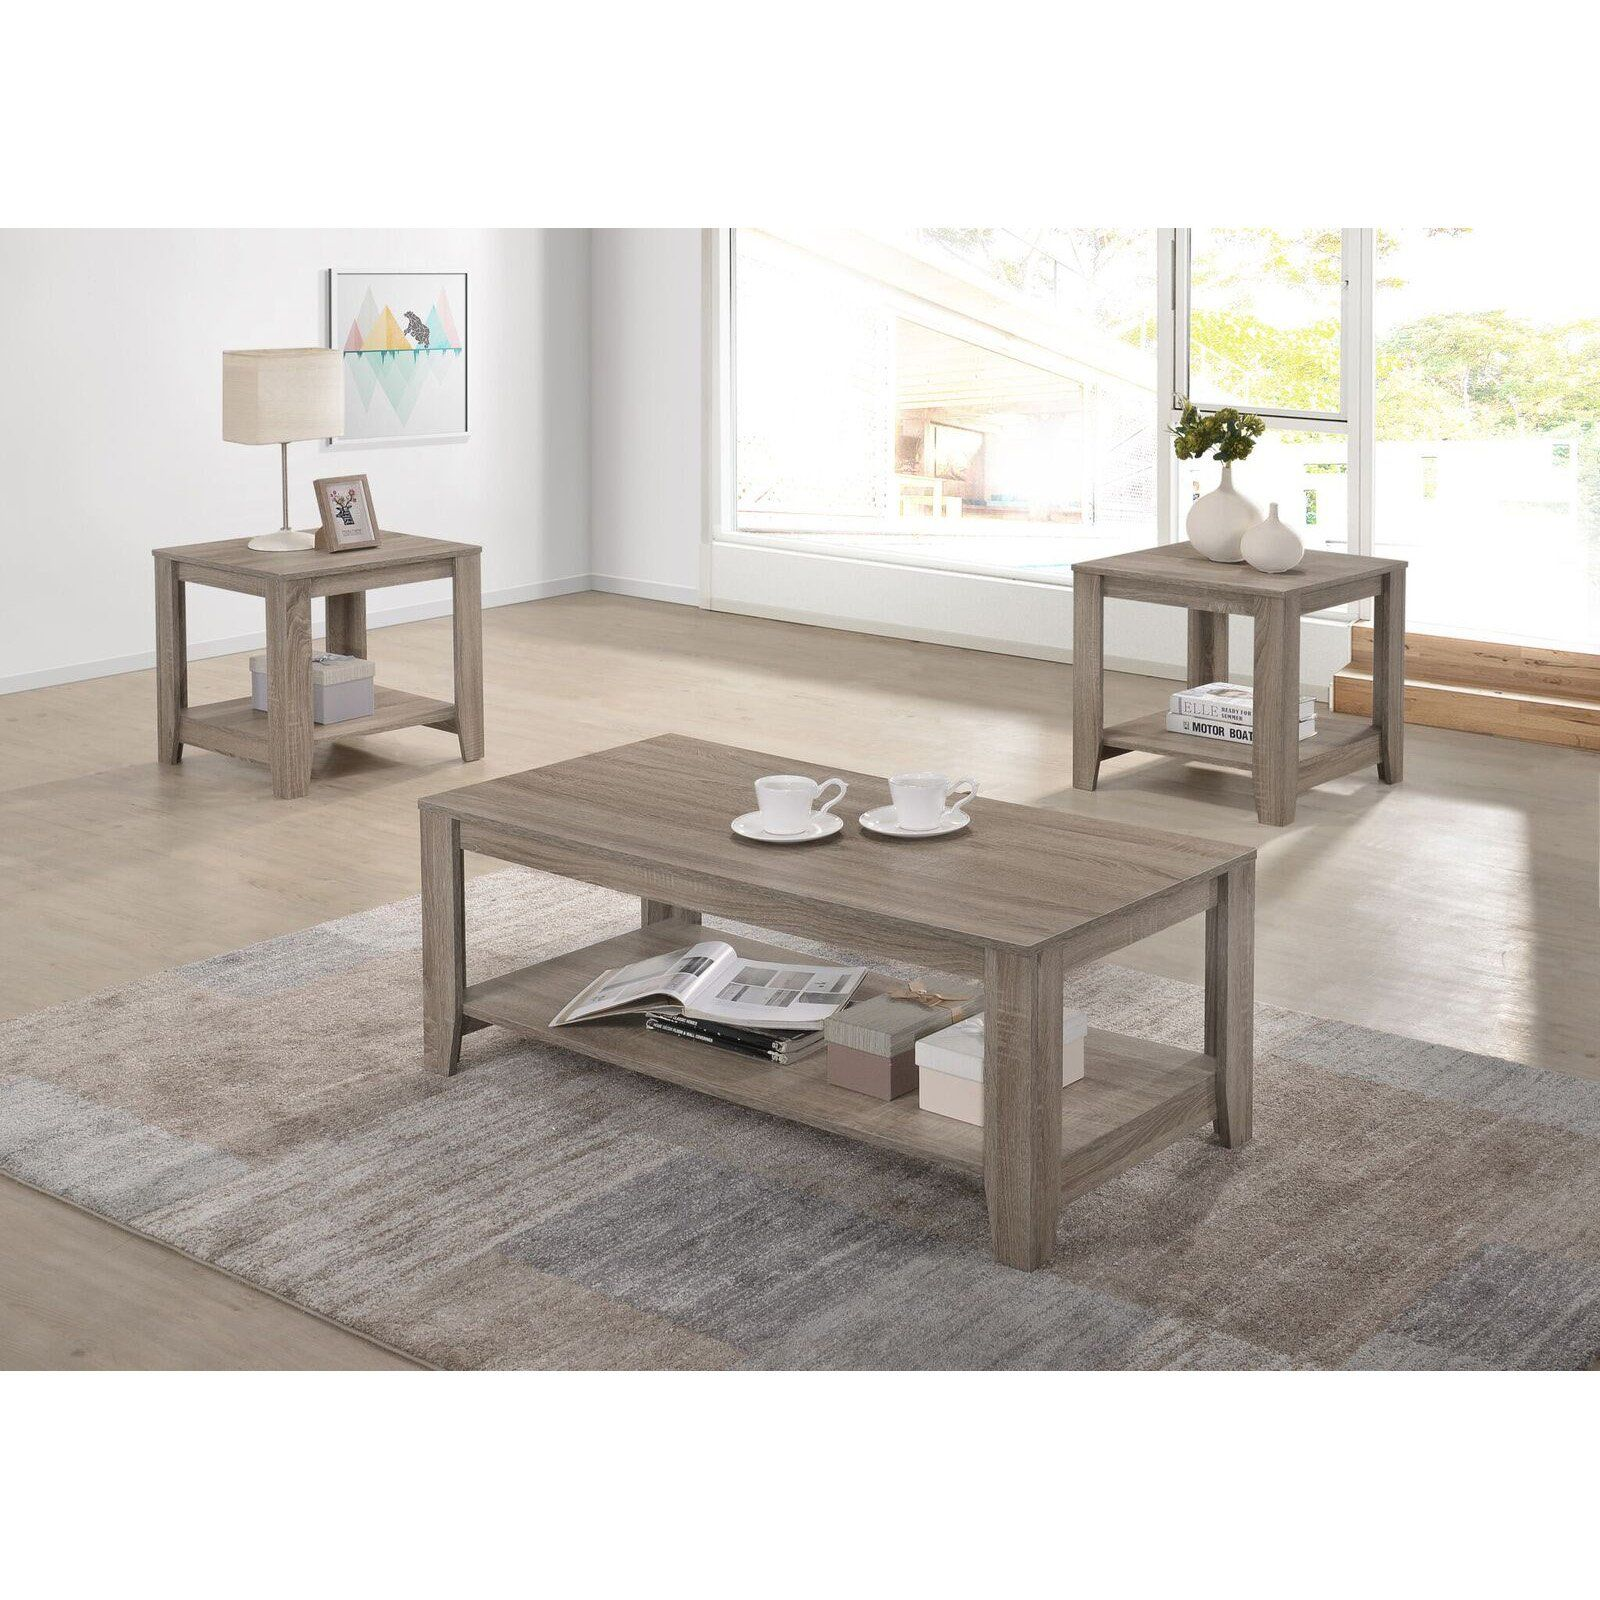 Progressive Furniture Barry Cocktail Table Walmart Com 3 Piece Coffee Table Set Progressive Furniture Coffee Table [ 1600 x 1600 Pixel ]